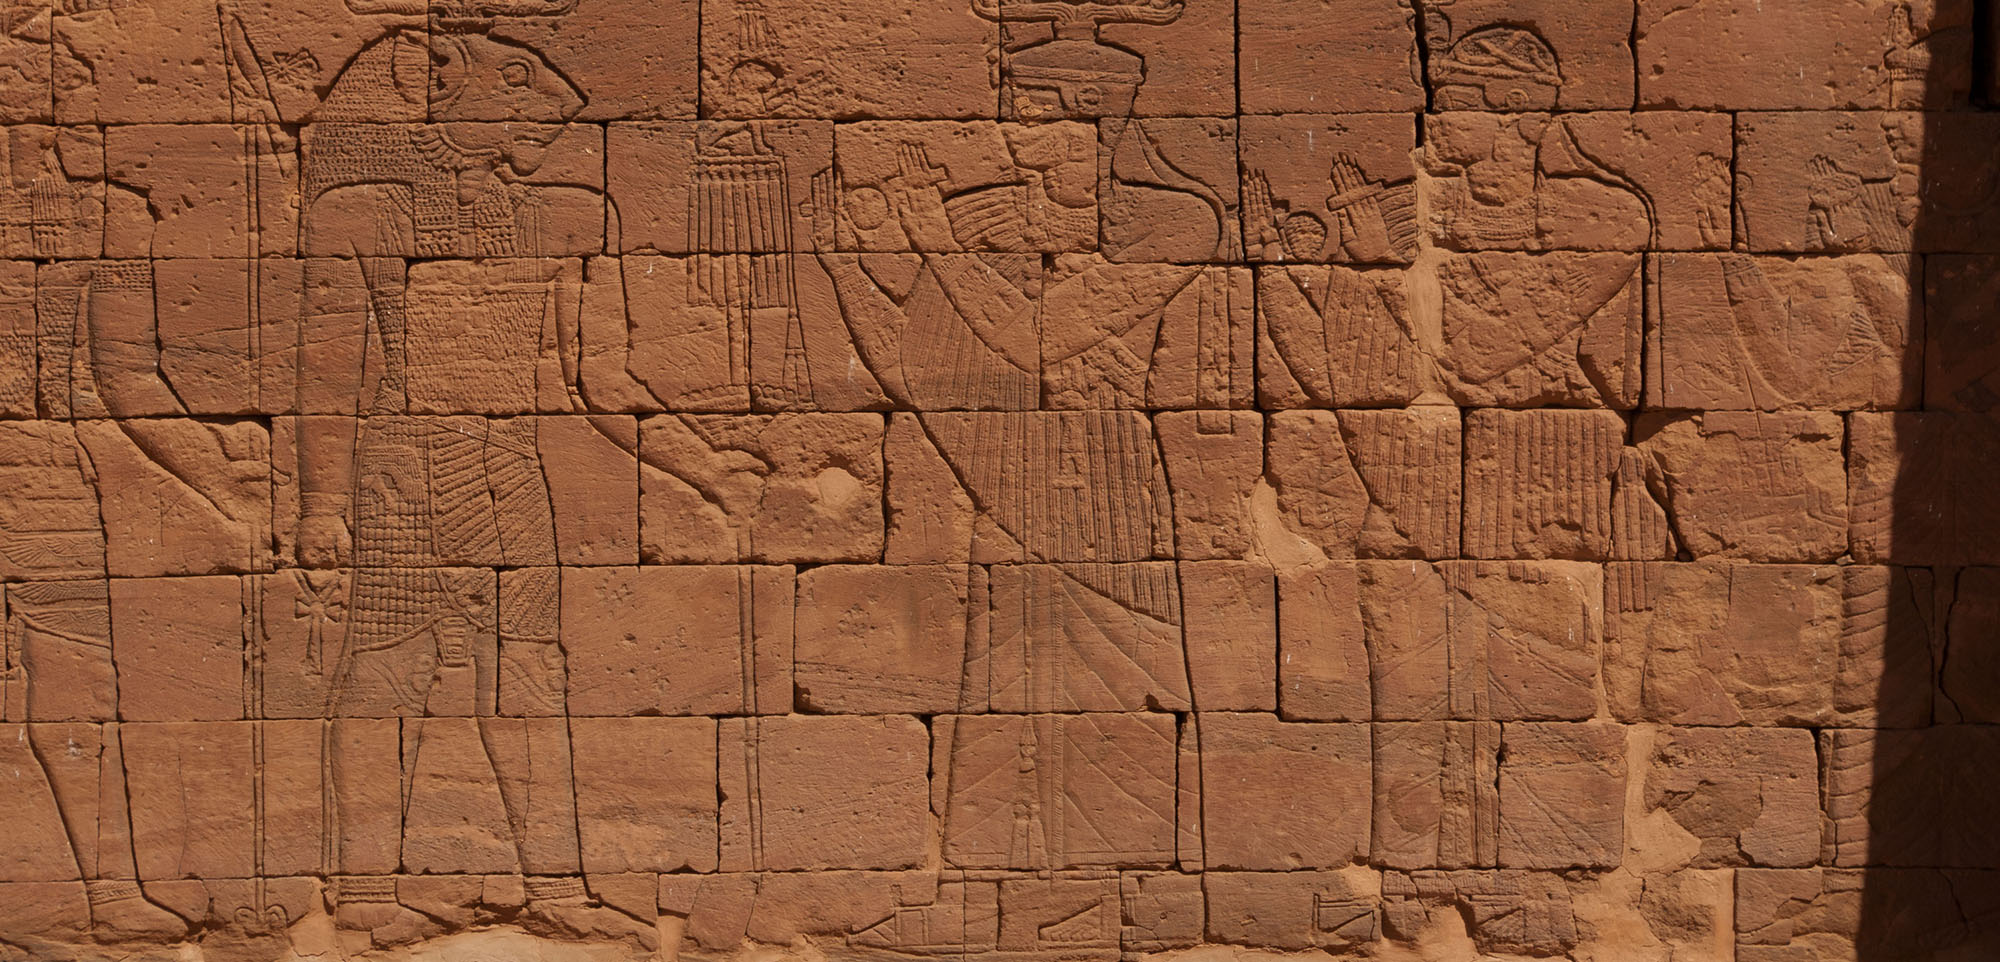 Ancient Egyptian carvings, Sudan, photo by Elizabeth Minor